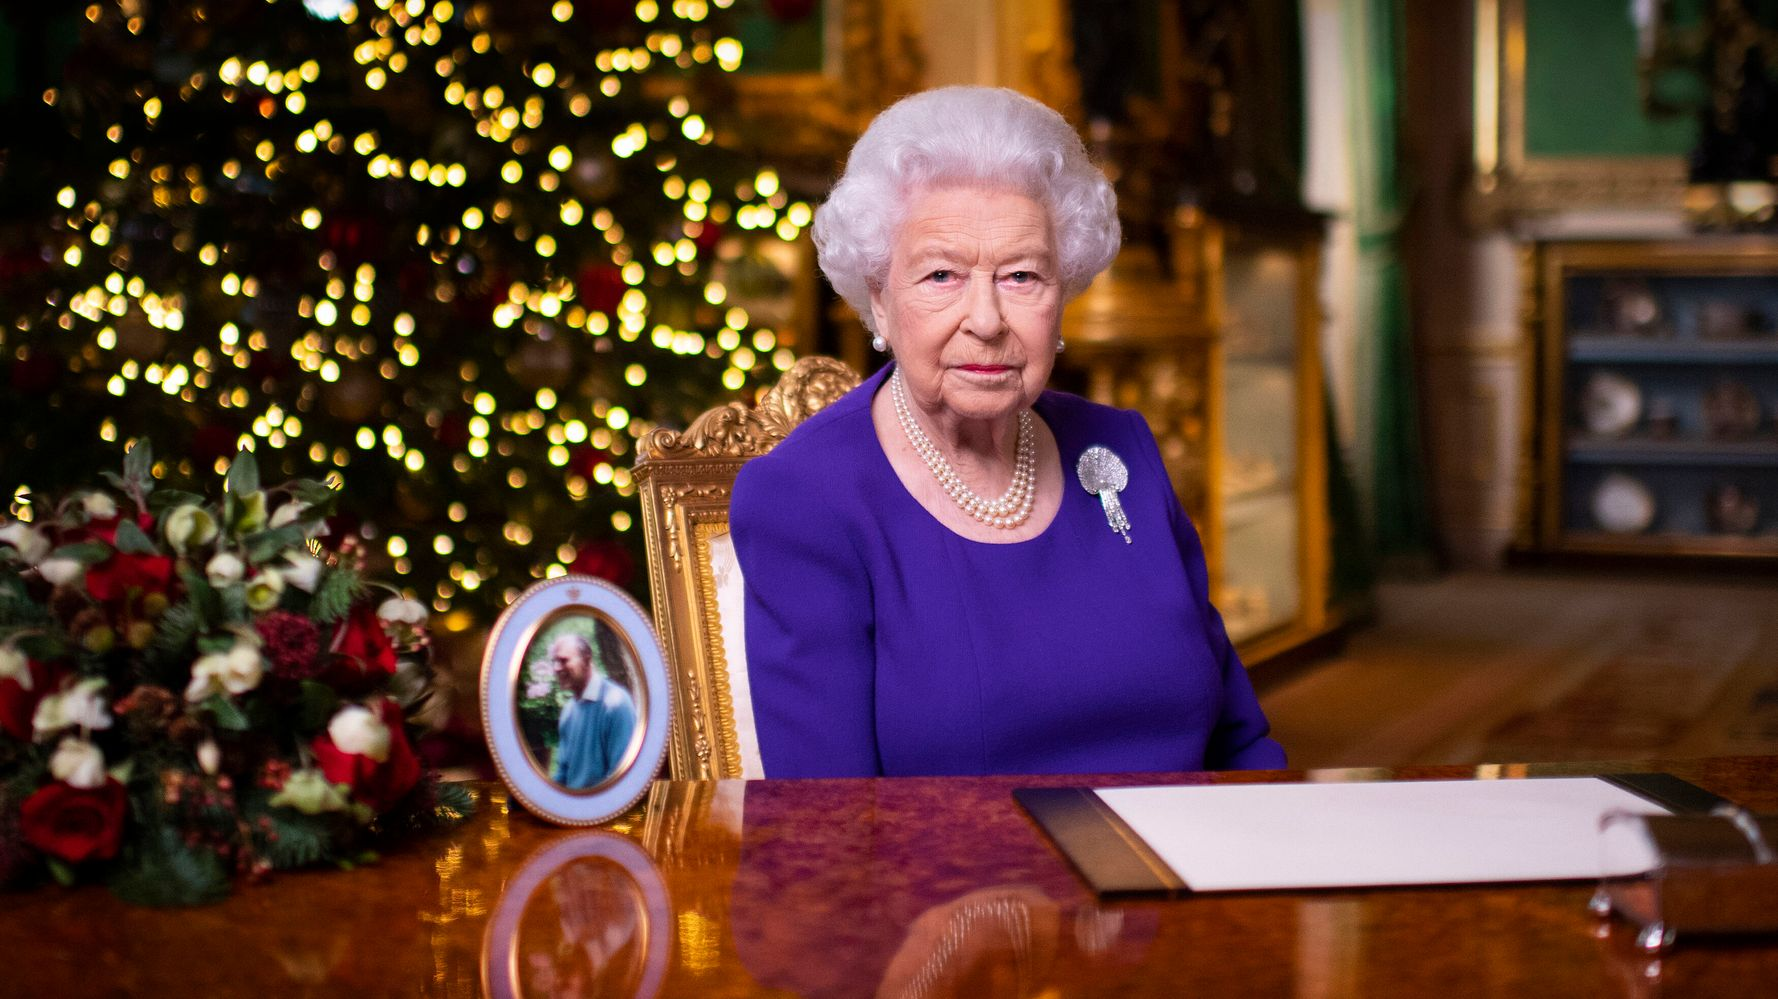 Queen Praises Front-Line Workers, Good Samaritans In Christmas Message